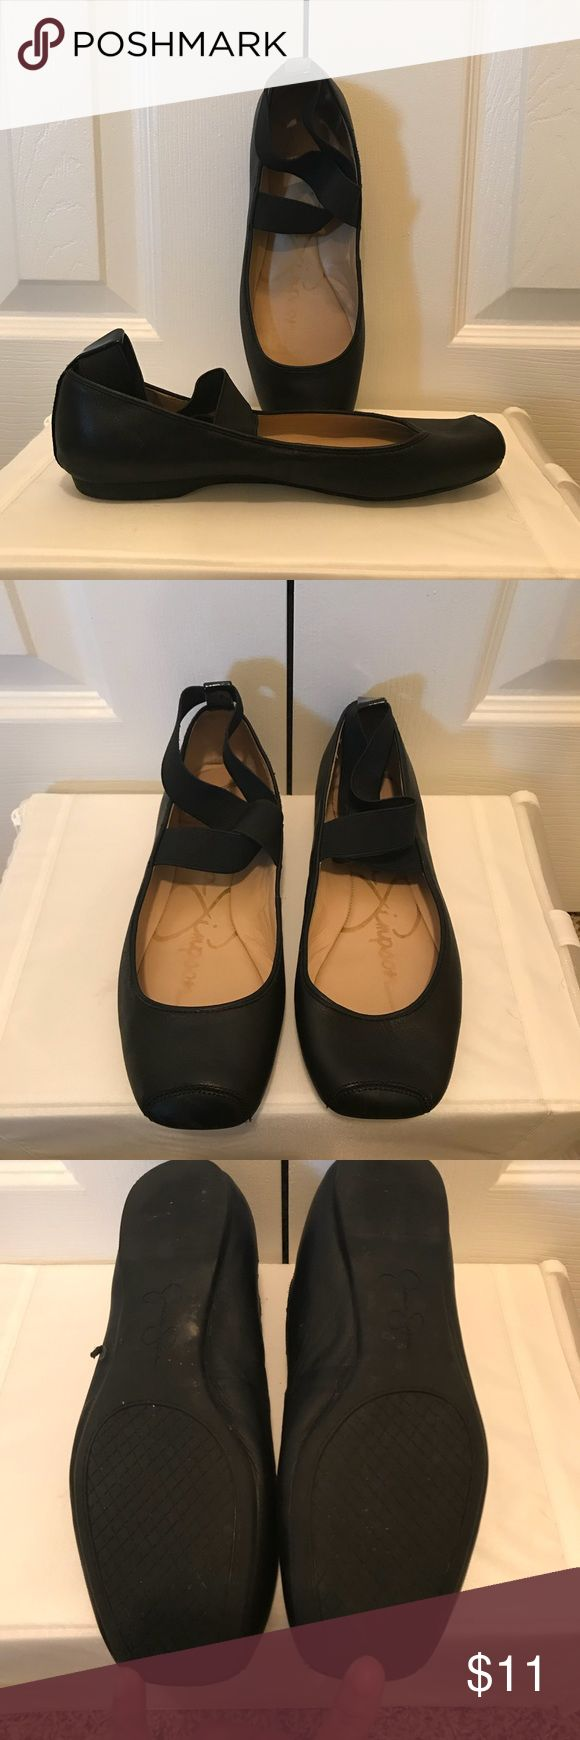 Jessica Simpson ballet flats Cute flats! Worn a couple of times. There is a scuff that scratched off some of the material as pictured. It is on the bottom of the shoe so you can't see it while wearing as shown in the picture after. Jessica Simpson Shoes Flats & Loafers